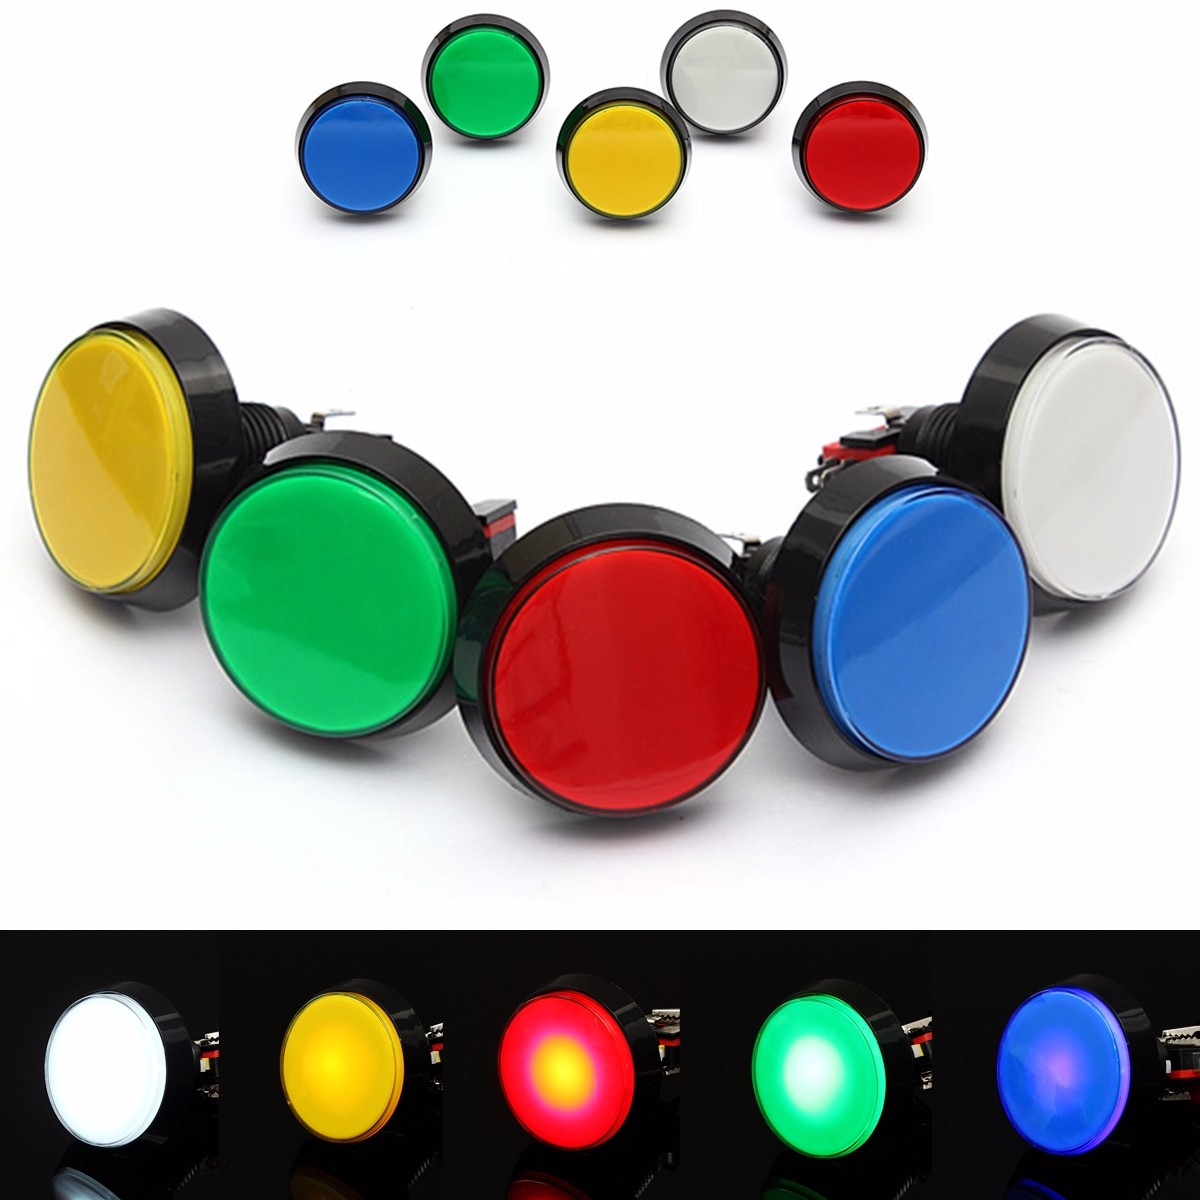 5 Colors Led Light Lamp 60mm Big Round Arcade Video Game